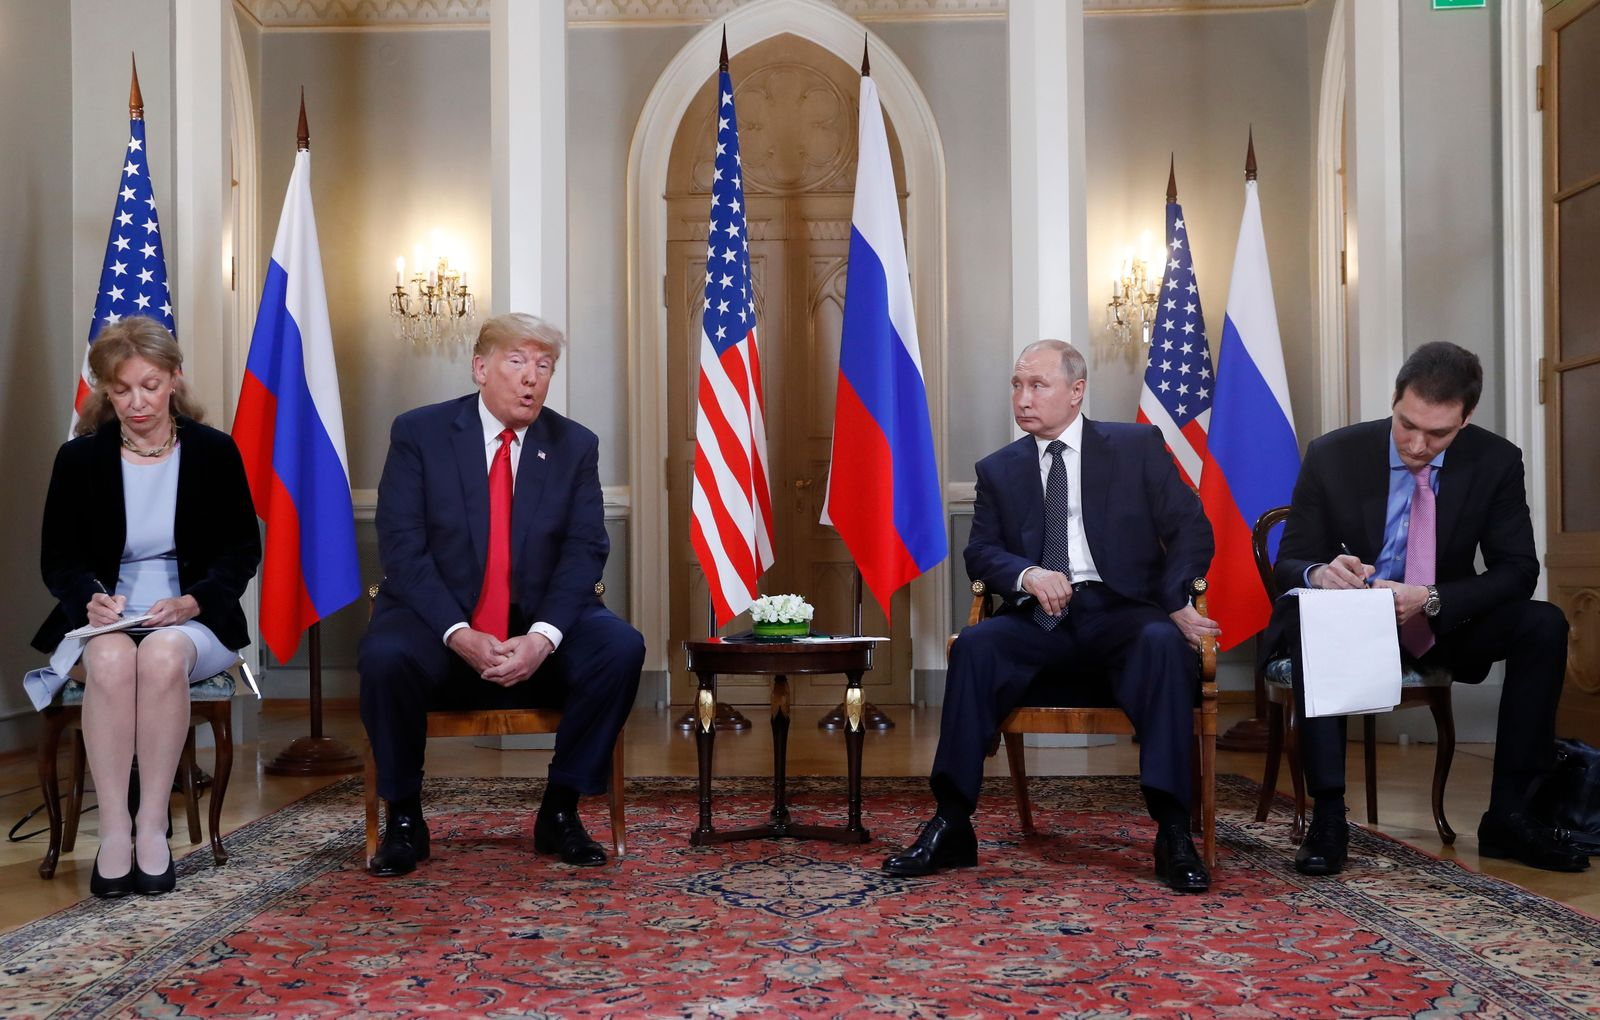 U.S. President Donald Trump, second from left, gives a statement as Russian President Vladimir Putin, second from right, looks on and translators take notes at the beginning of a meeting at the Presidential Palace in Helsinki, Finland, Monday, July 16, 2018. (AP Photo/Pablo Martinez Monsivais)